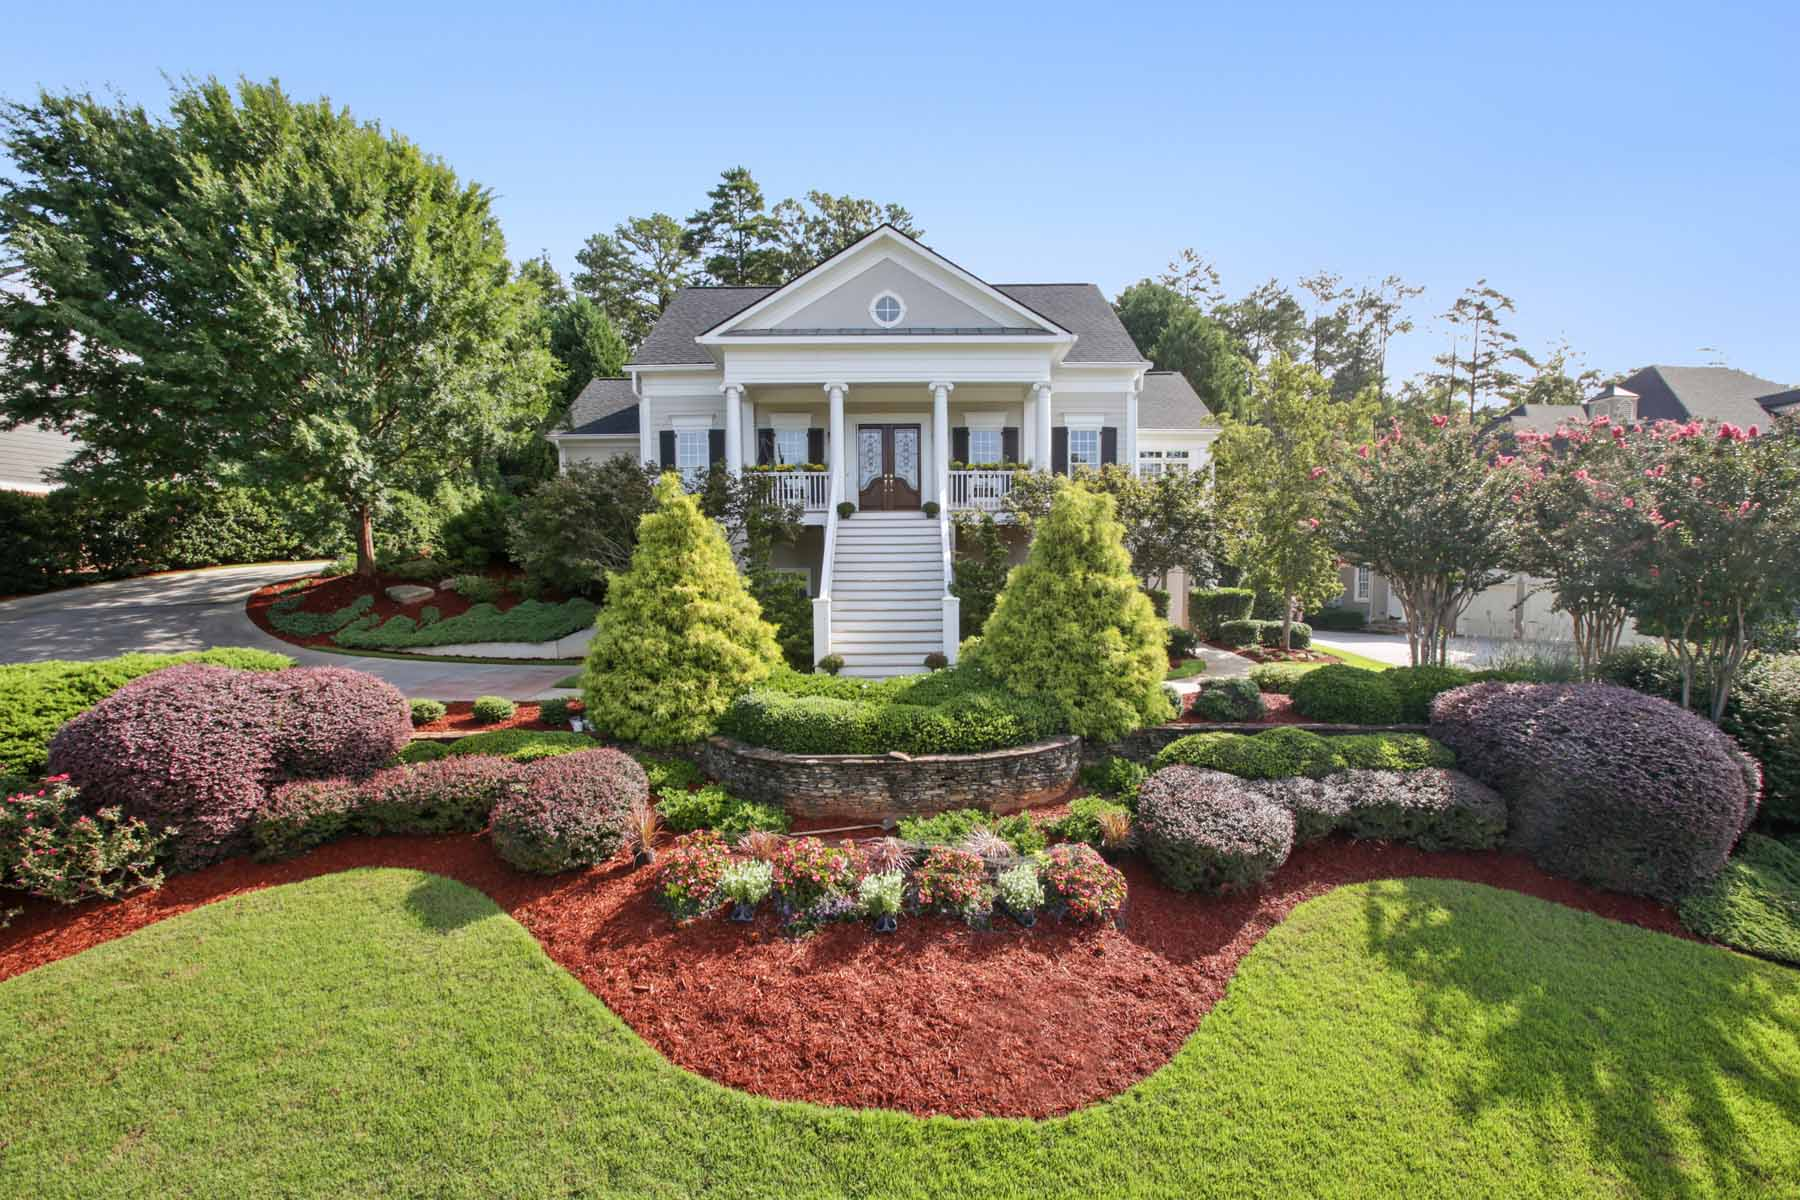 Single Family Home for Active at Stunning North Peachtree City Location, easy access to airport and Atlanta. 108 Peninsula Drive Peachtree City, Georgia 30269 United States